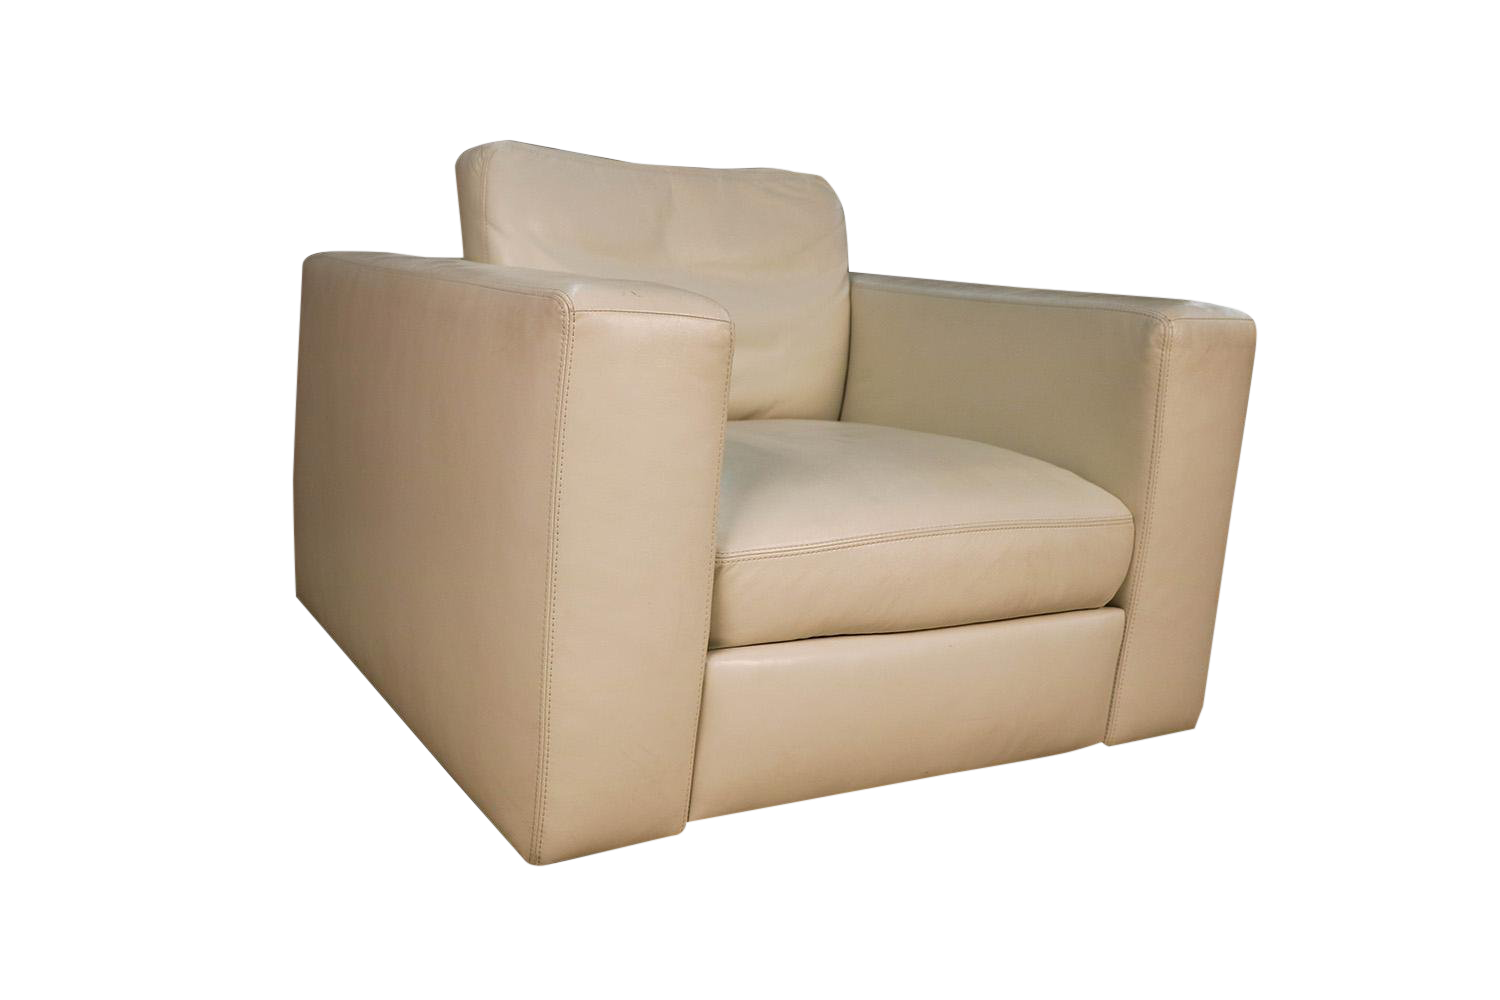 Gently Used American Leather Furniture Up To 40 Off At Chairish